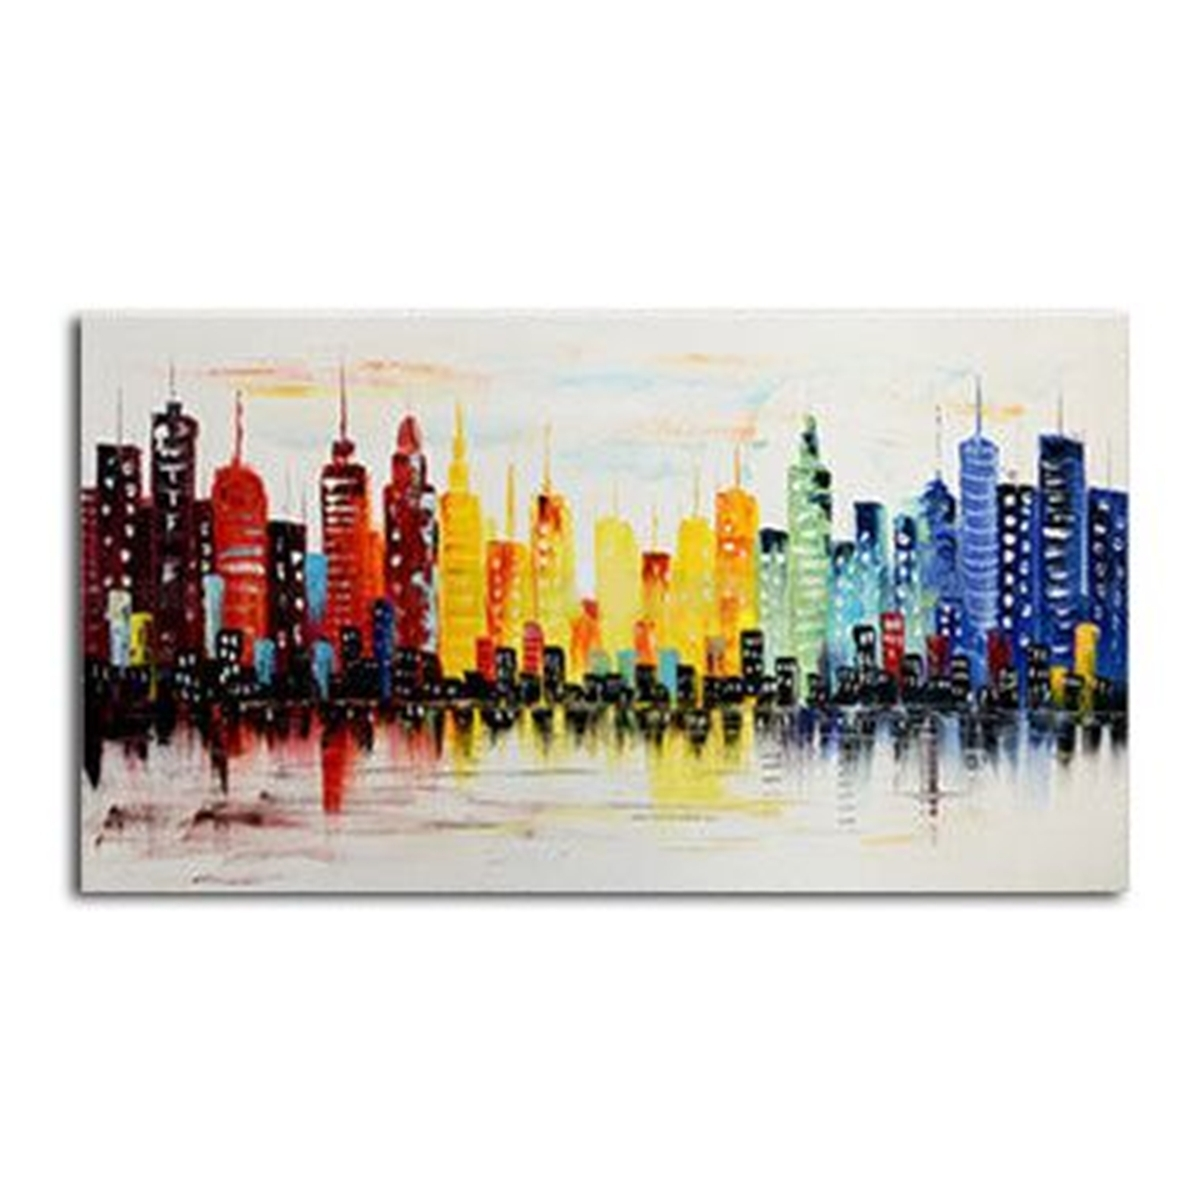 120X60Cm Modern City Canvas Abstract Painting Print Living Room Art throughout Modern Abstract Painting Wall Art (Image 2 of 20)